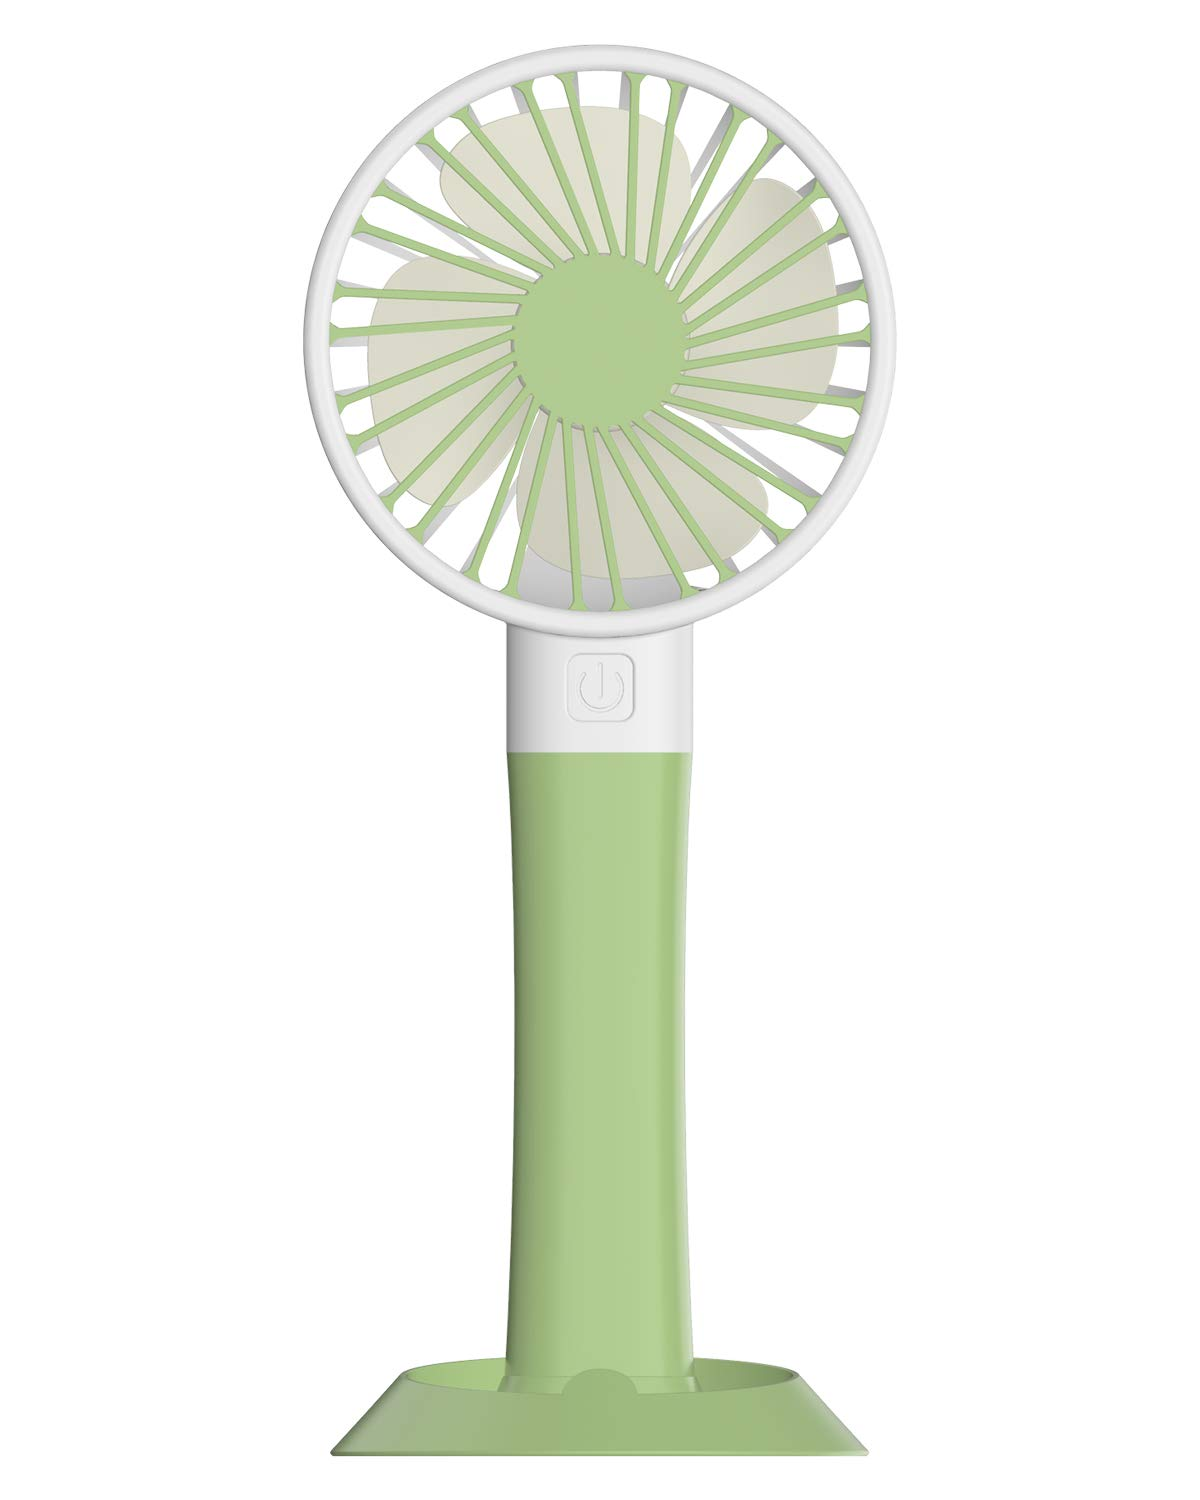 Brilex Handheld Mini USB Fan with Colored Light, 3 Wind Power Modes